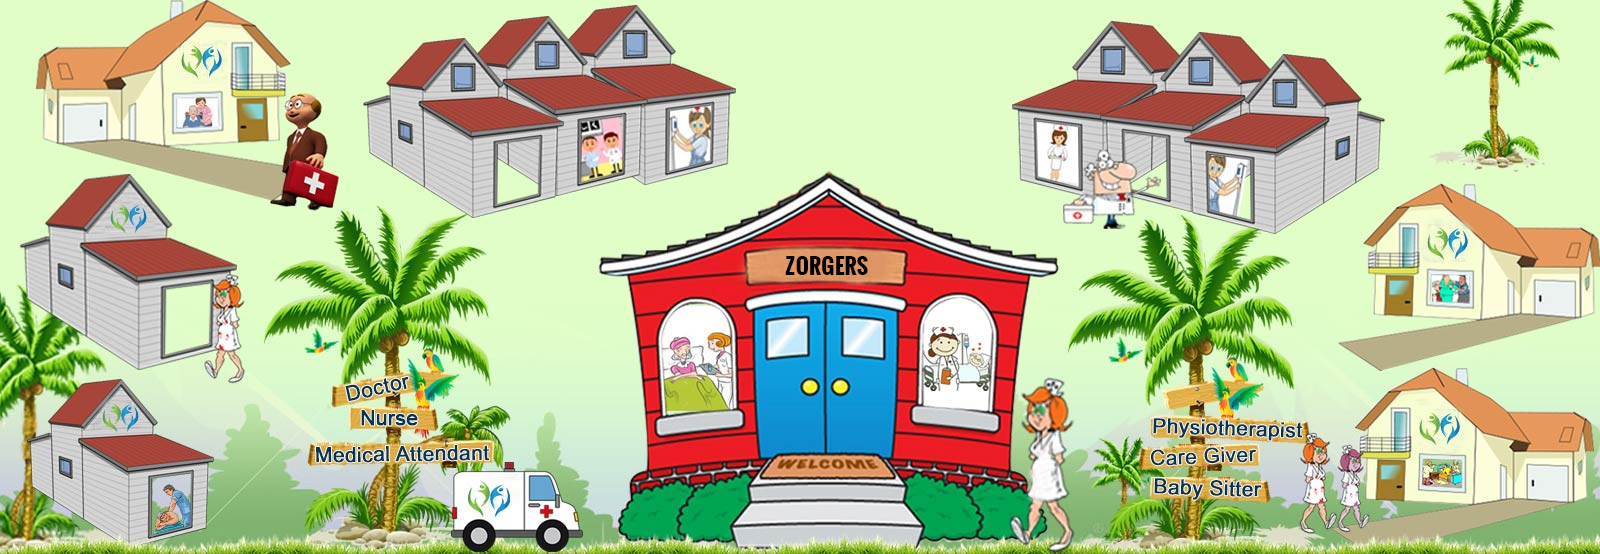 About Zorgers